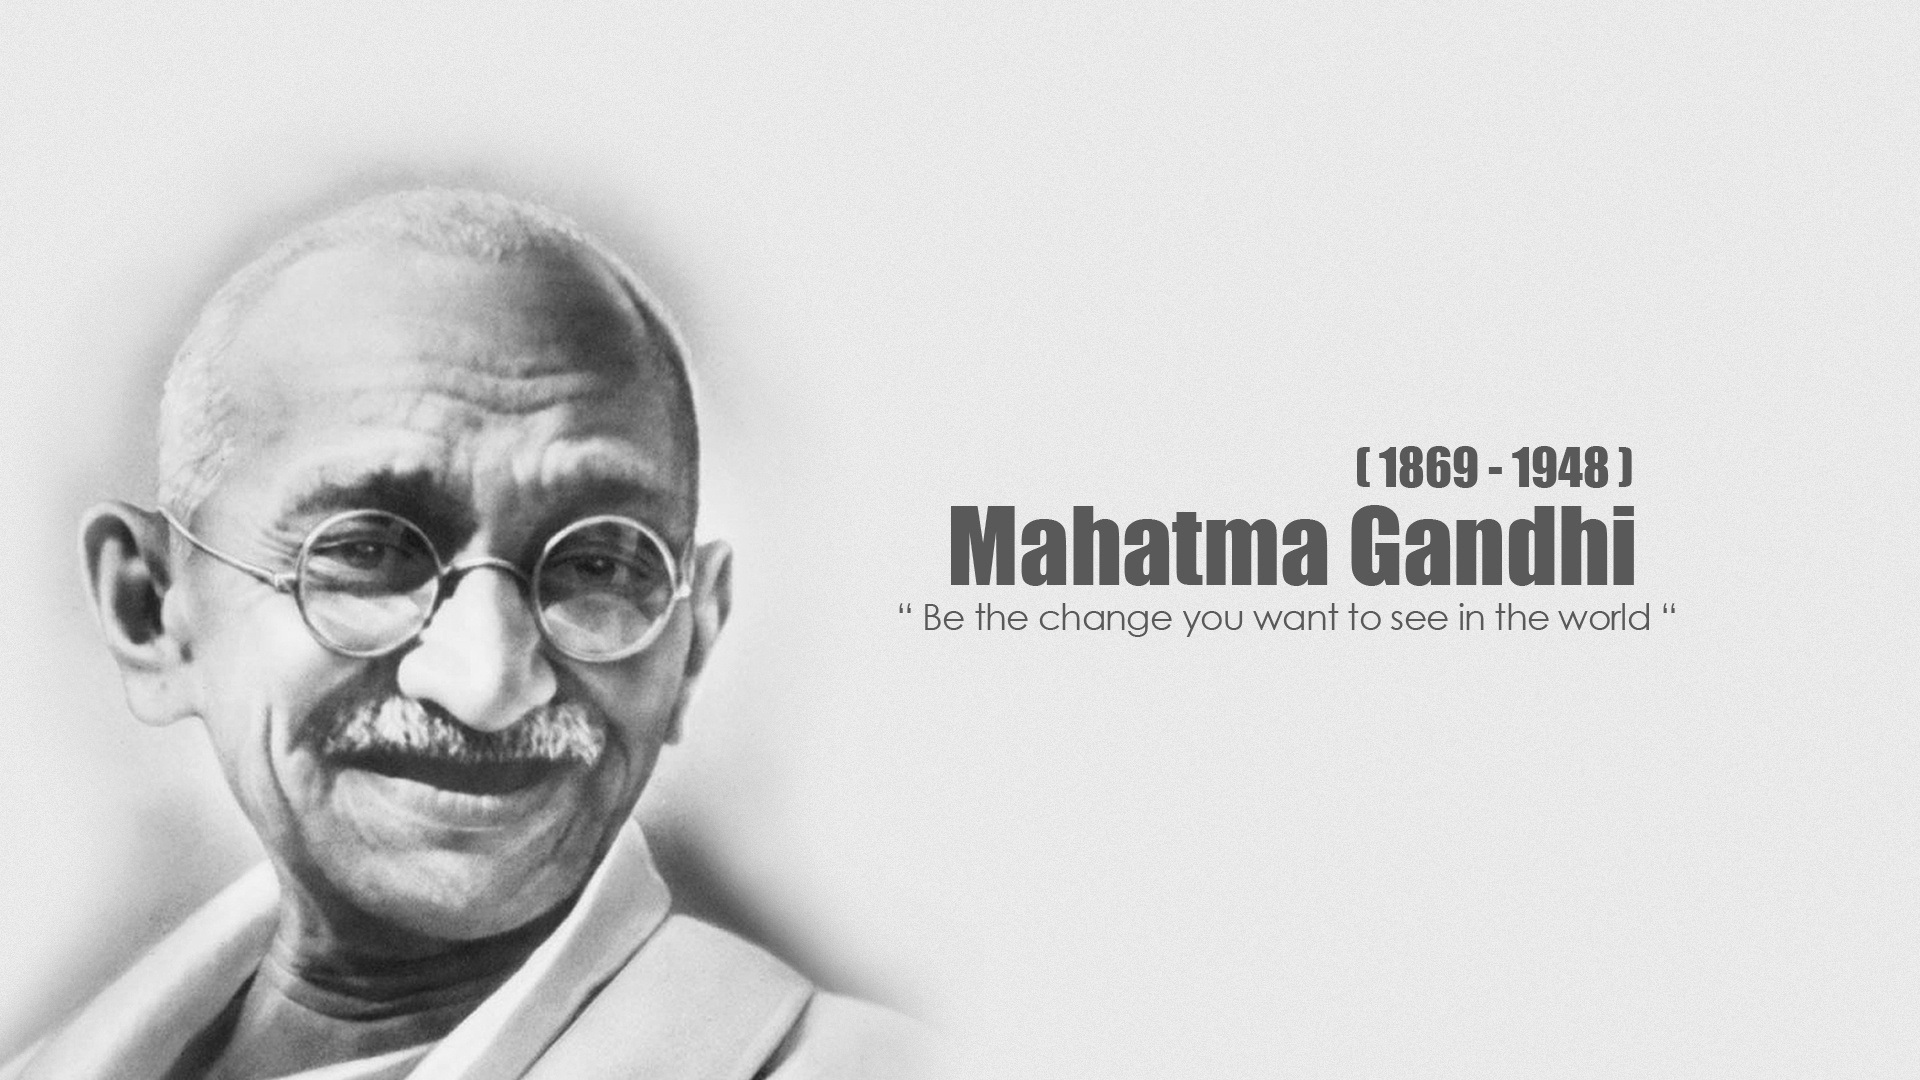 mahatma gandhi essay article speech biography